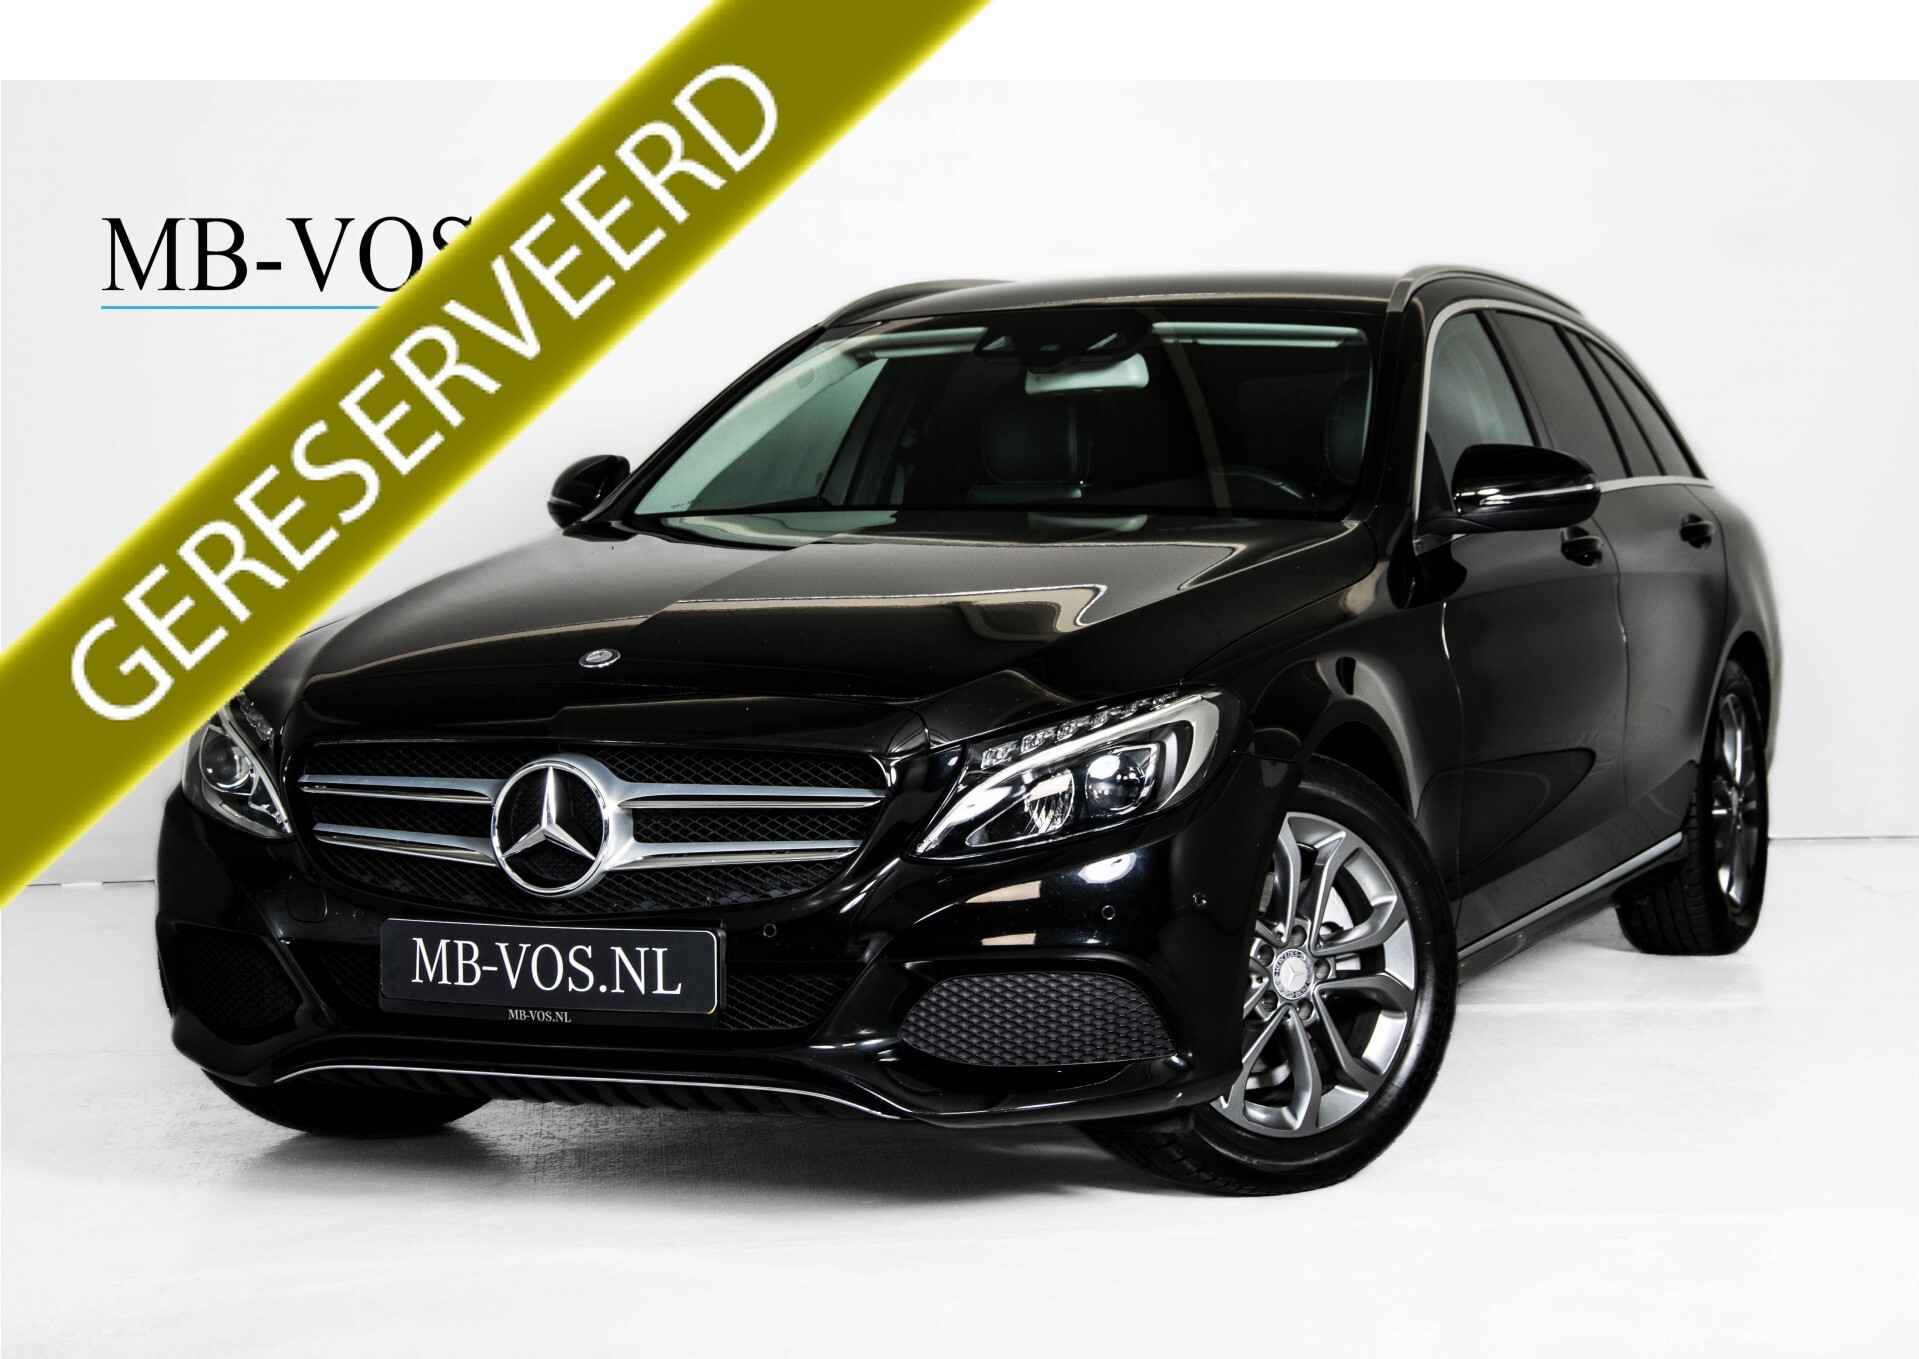 Mercedes-Benz C-Klasse Estate 180 Avantgarde LED/Navi/Privacyglas/Pts/Aut-koffer Aut7 Foto 1